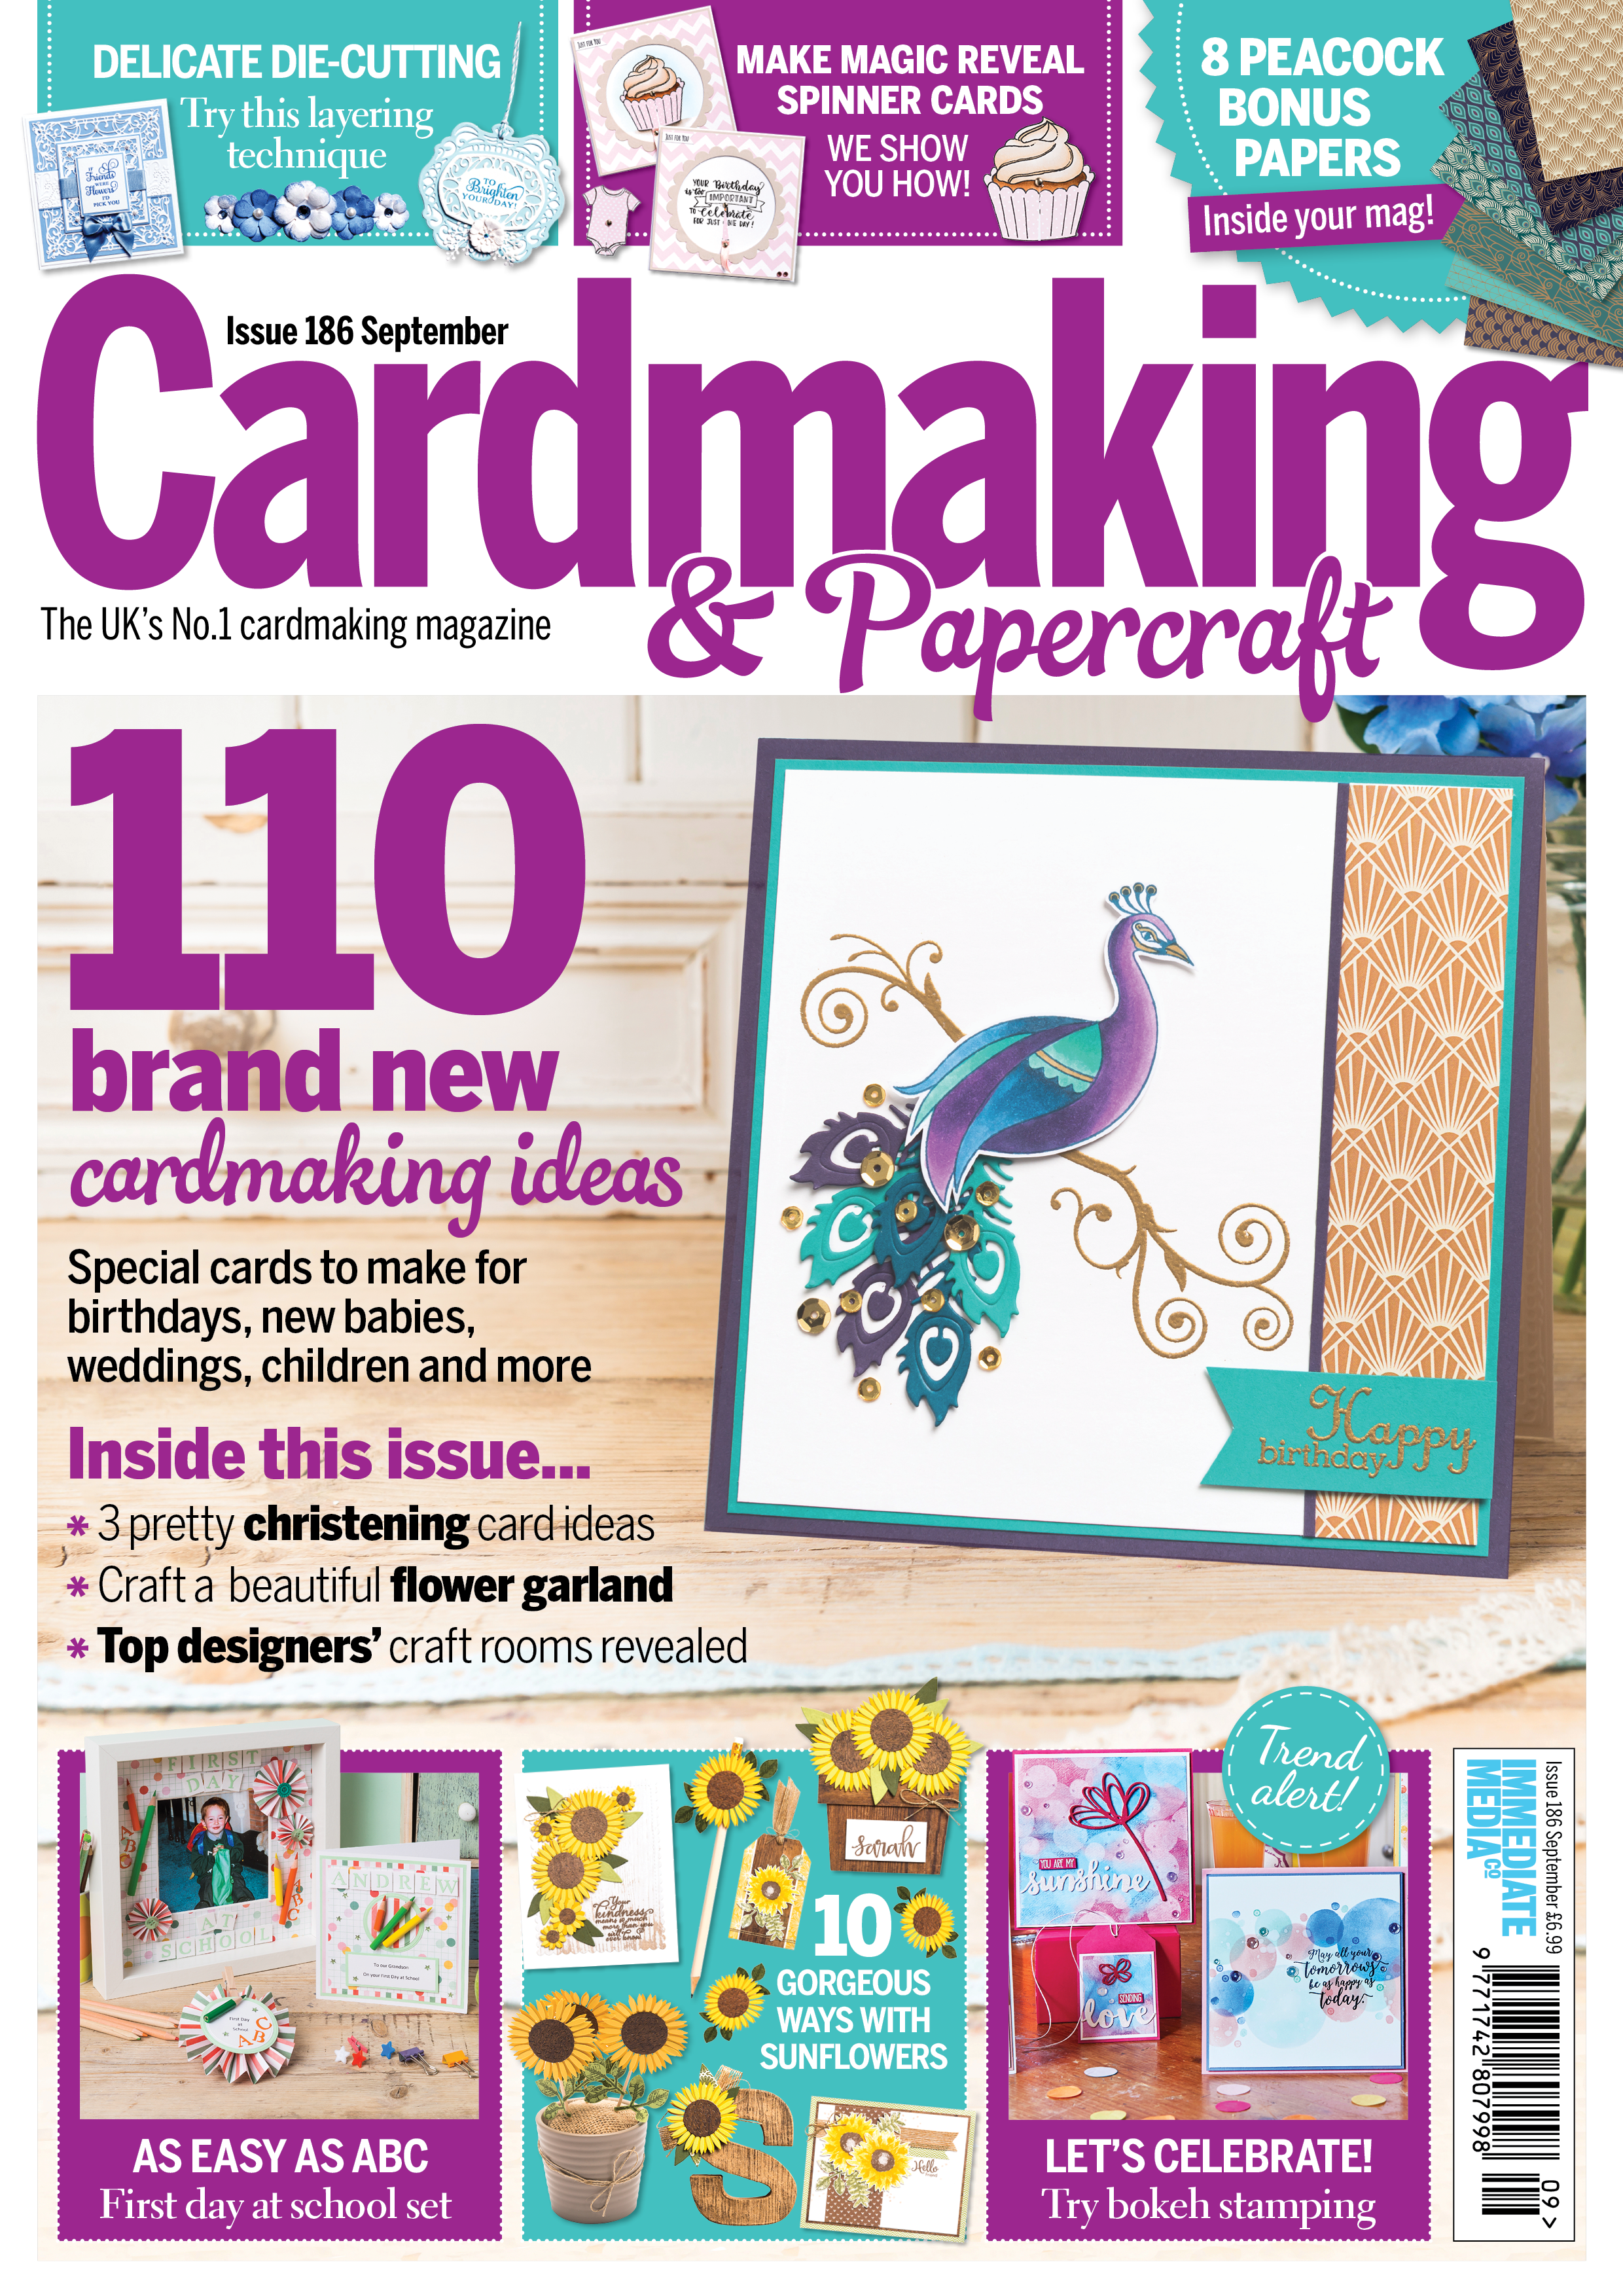 The September Issue Of Cardmaking Papercraft Is Out Now It S Bursting With 110 Ideas For Birthdays Weddin Cardmaking And Papercraft Cardmaking Paper Crafts